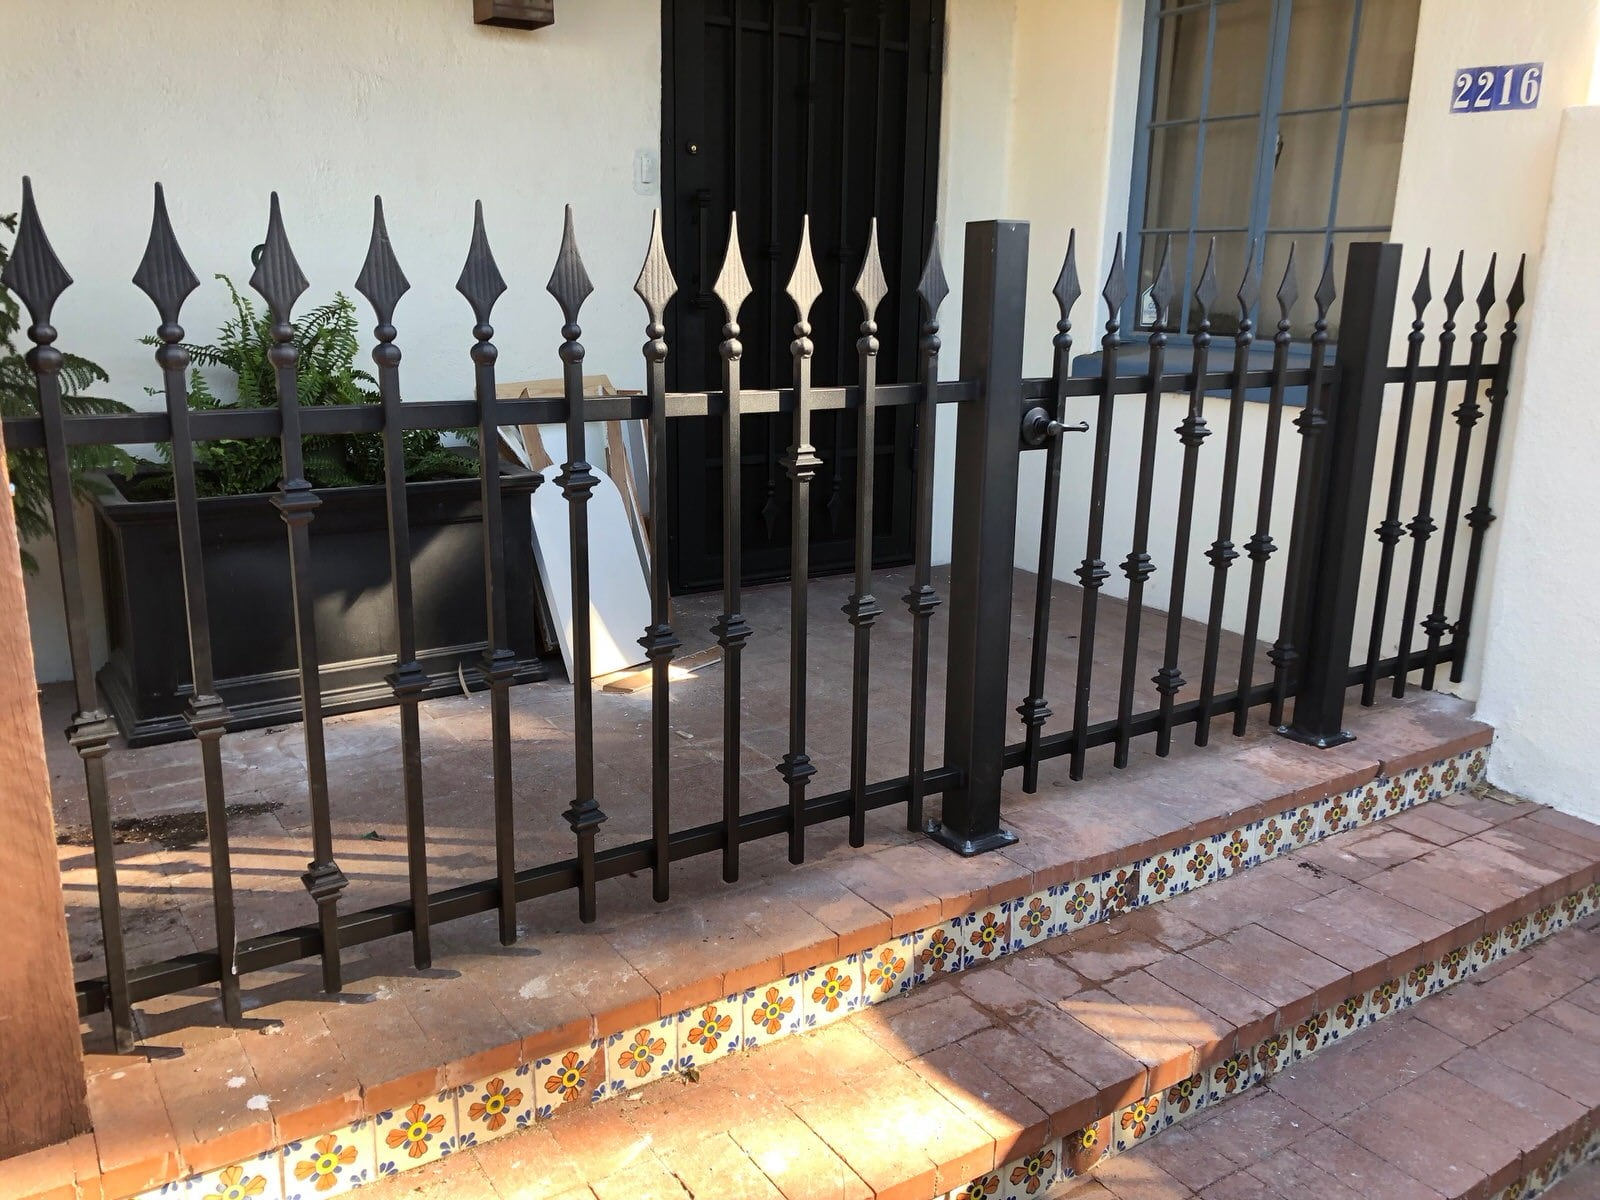 Low iron fence and gate with knuckles and spear endings 1671 - Installed in downtown Tucson